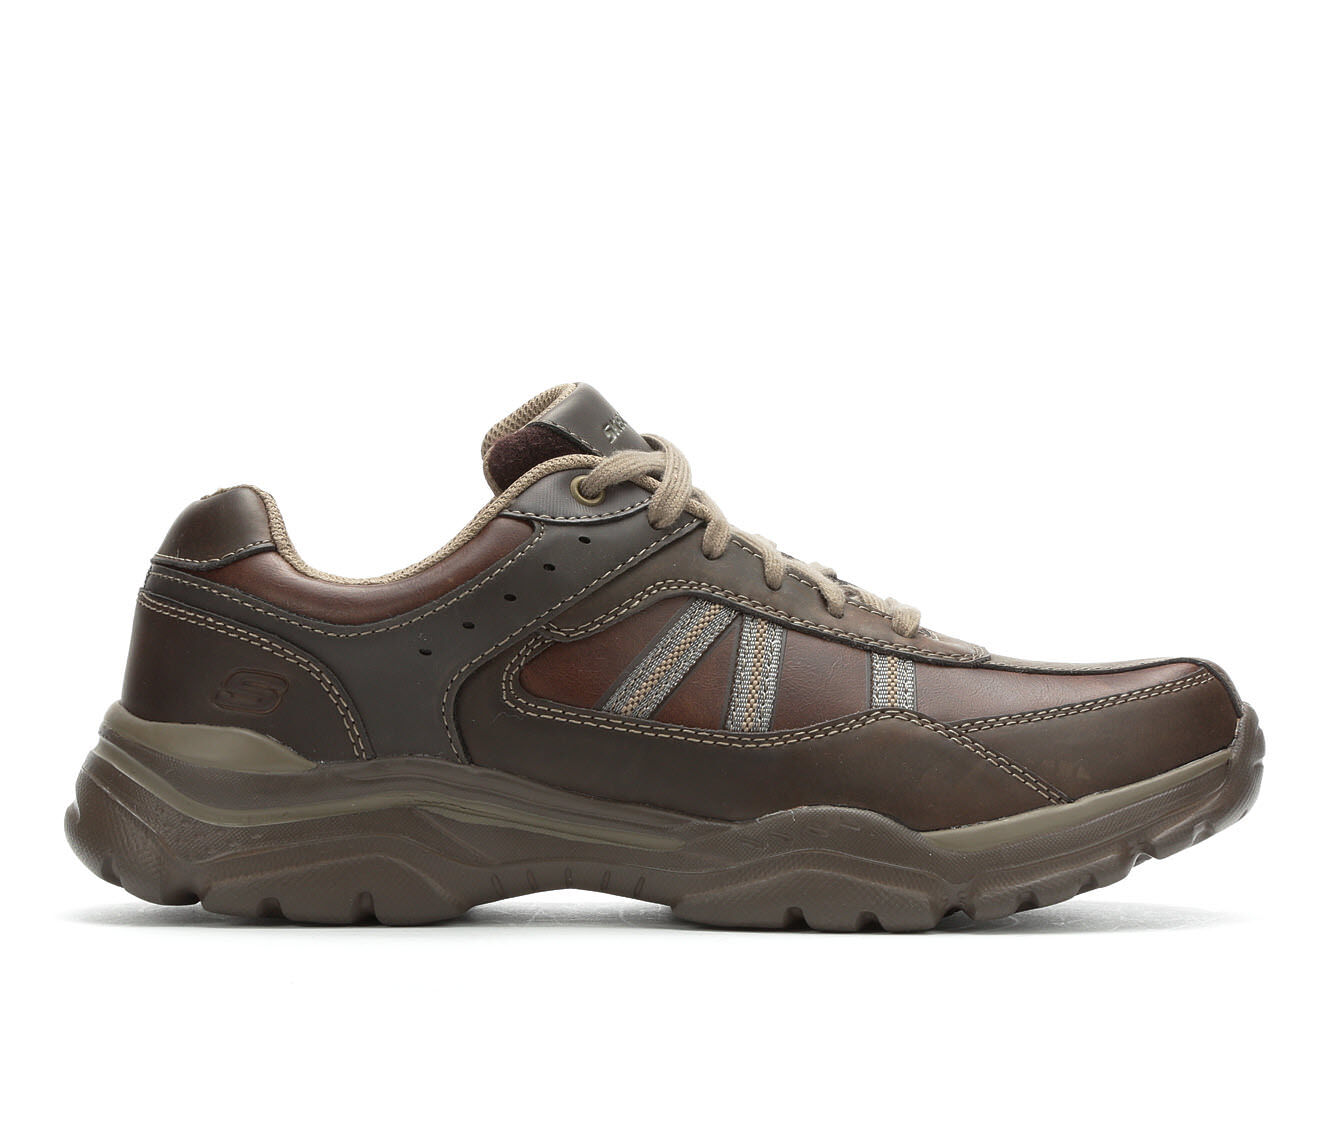 Men's Skechers Texon 65418 Relaxed Fit Lace-Up Oxfords Chocolate